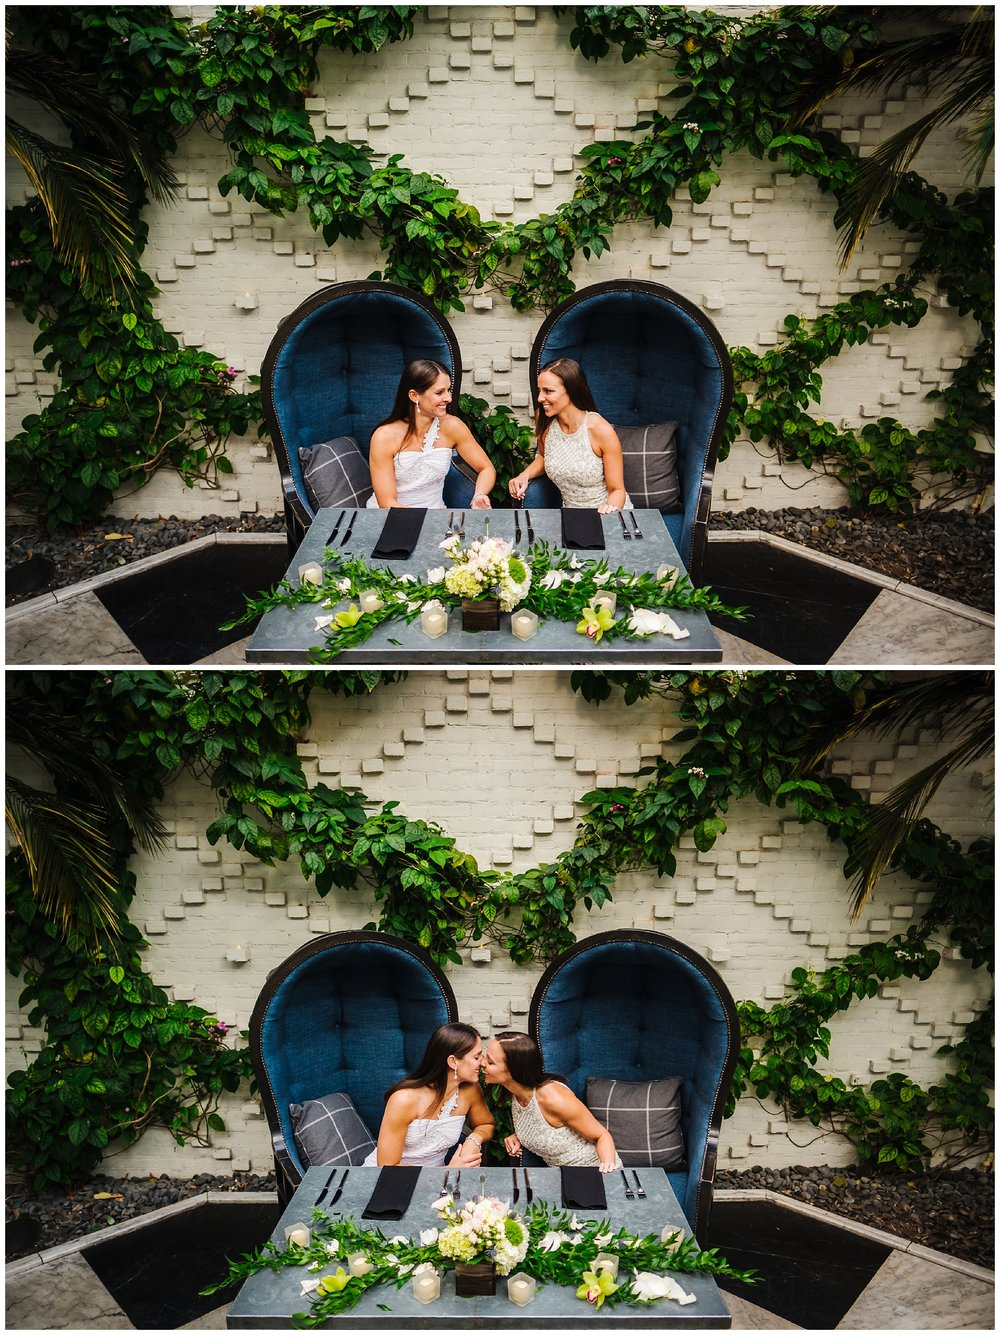 tampa-wedding-photography-oxford-exchange-reception-same-sex-orchids-greenery-travel_0024.jpg